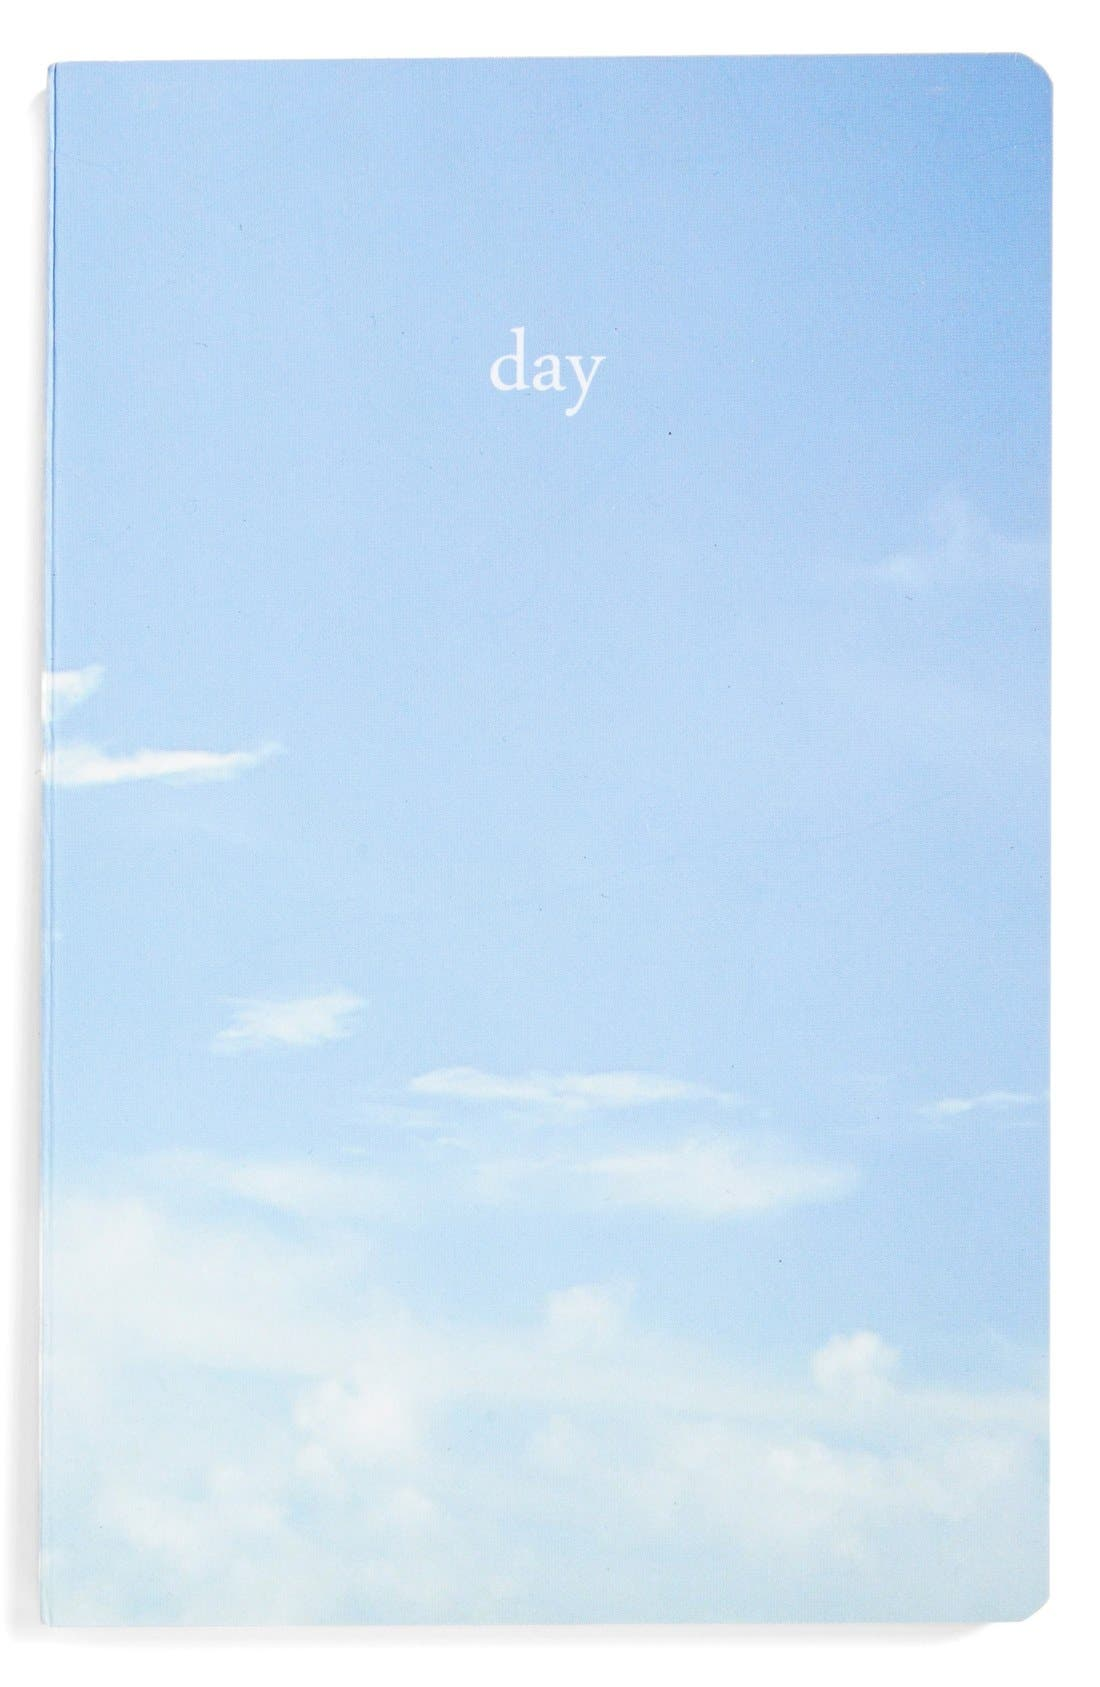 Alternate Image 1 Selected - Poketo 'One Day' Small Notebook